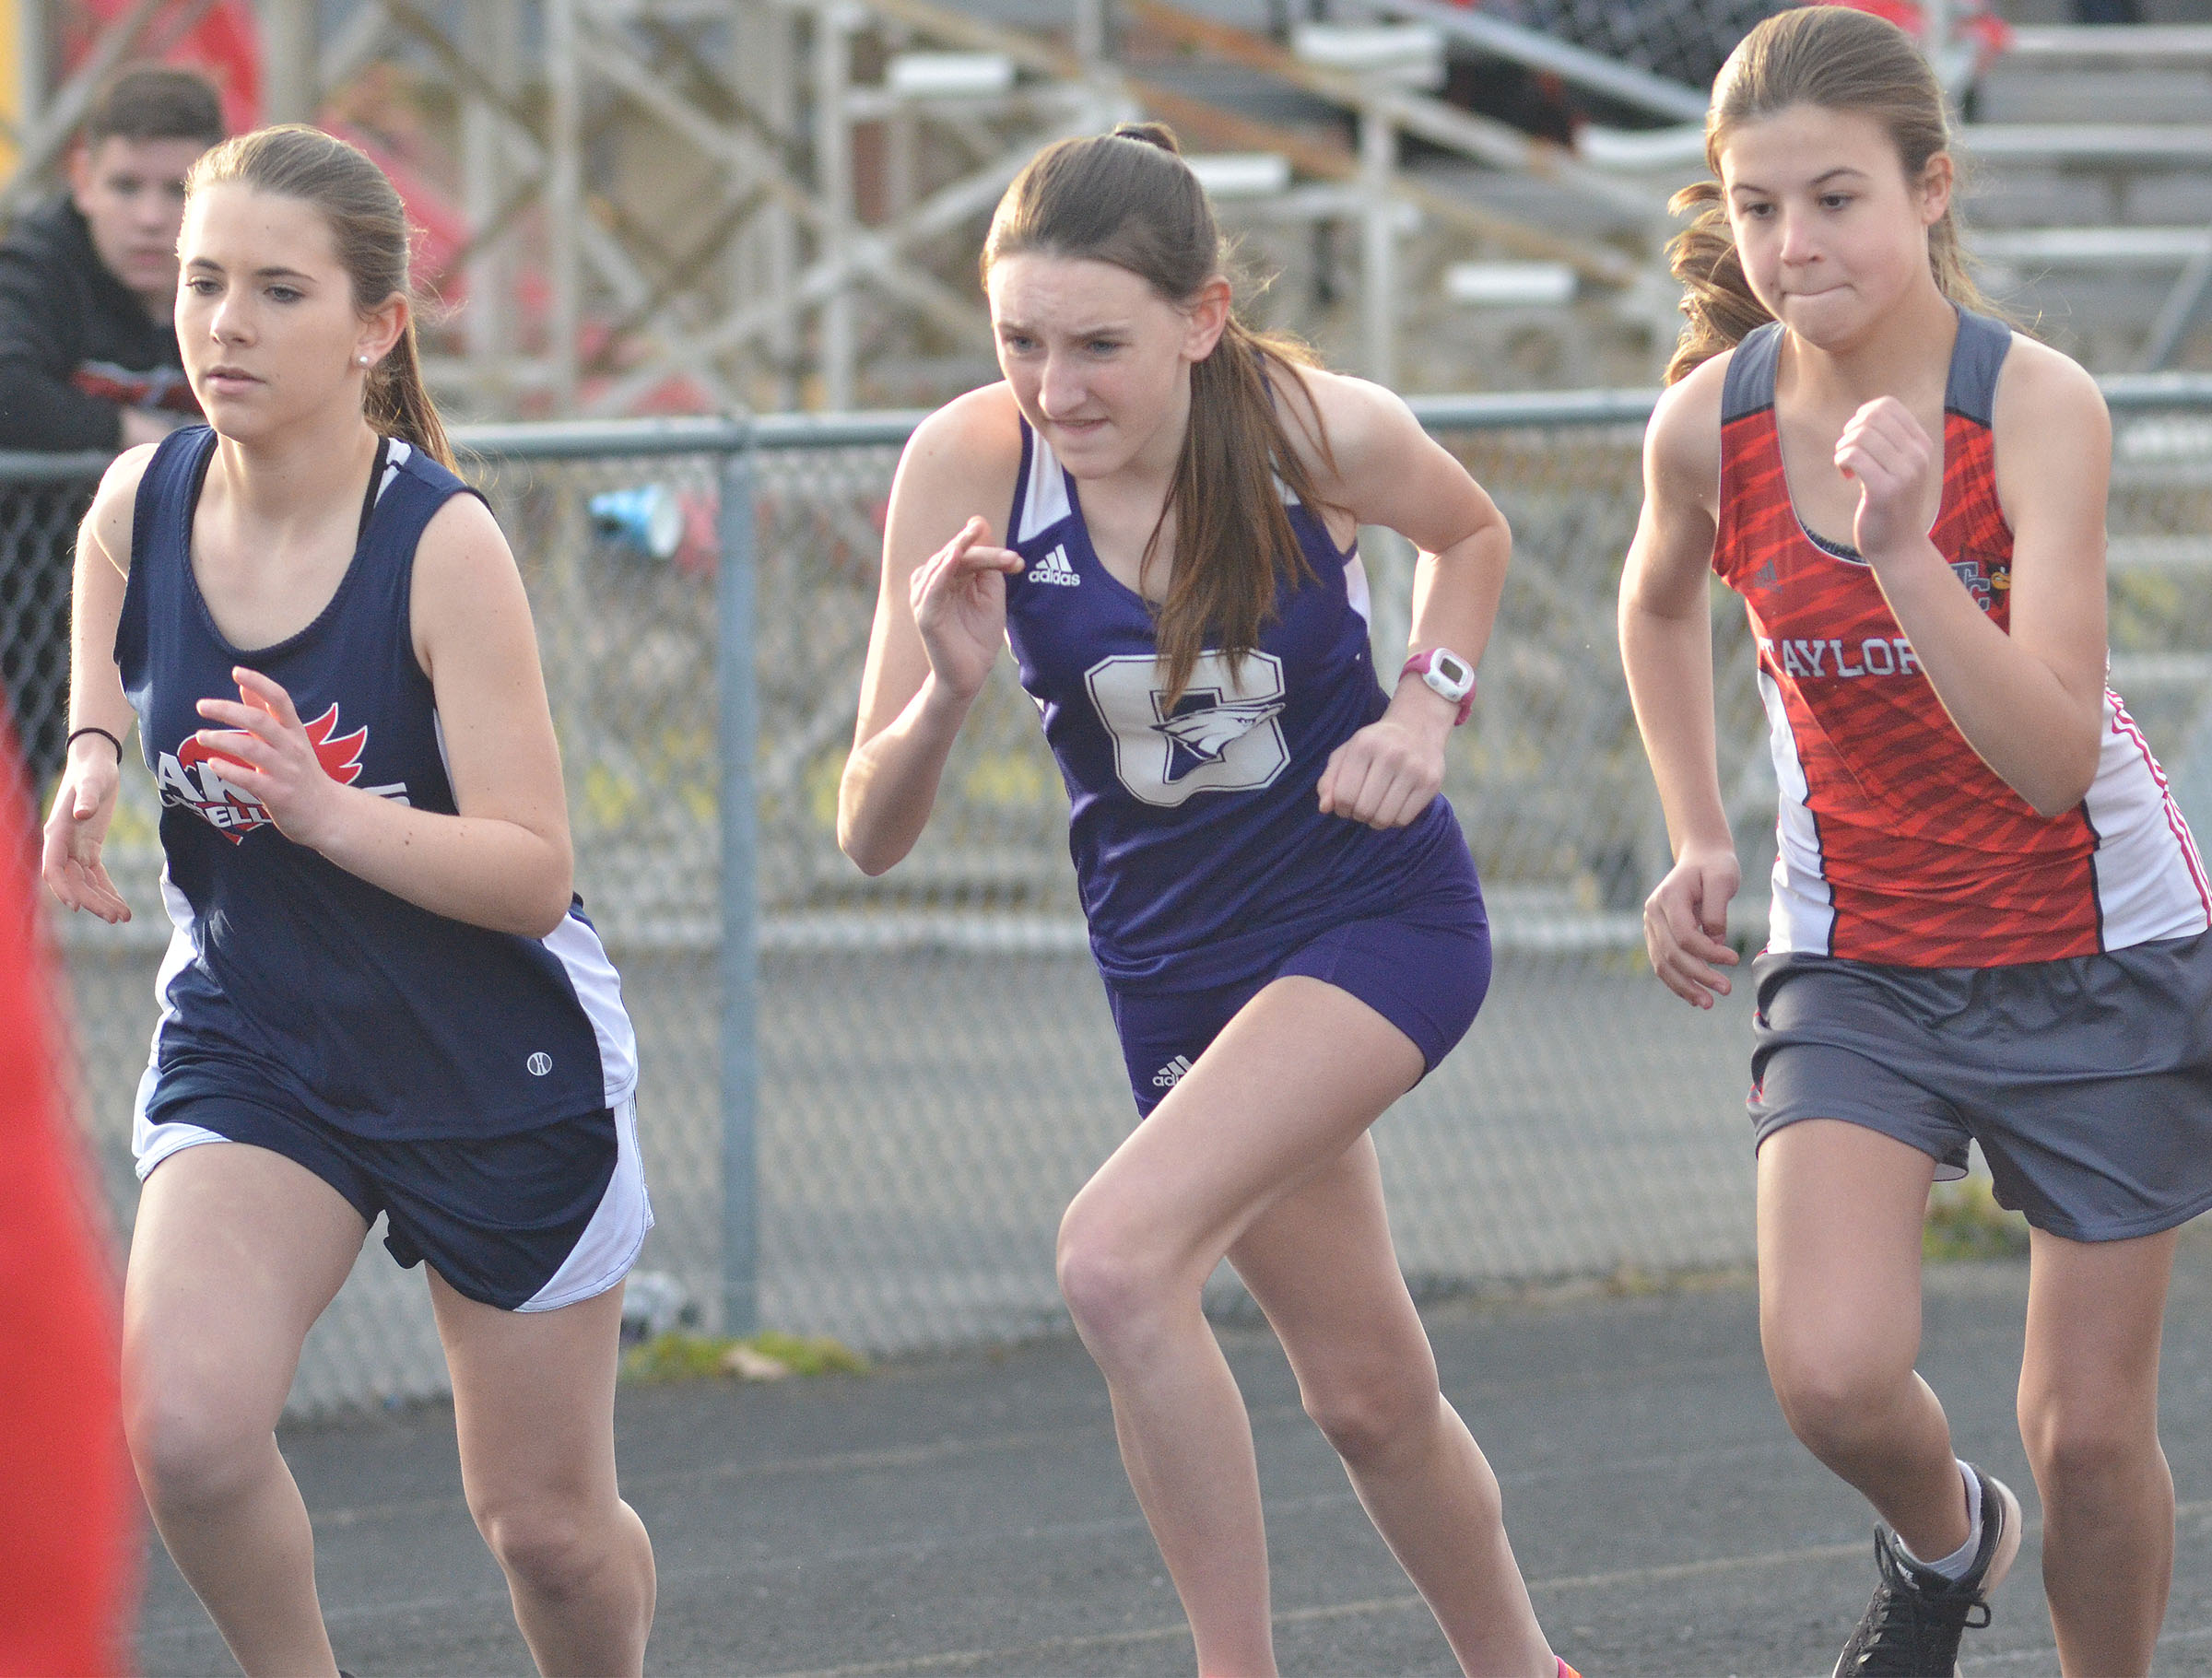 CHS freshman Zoe McAninch, center, runs.